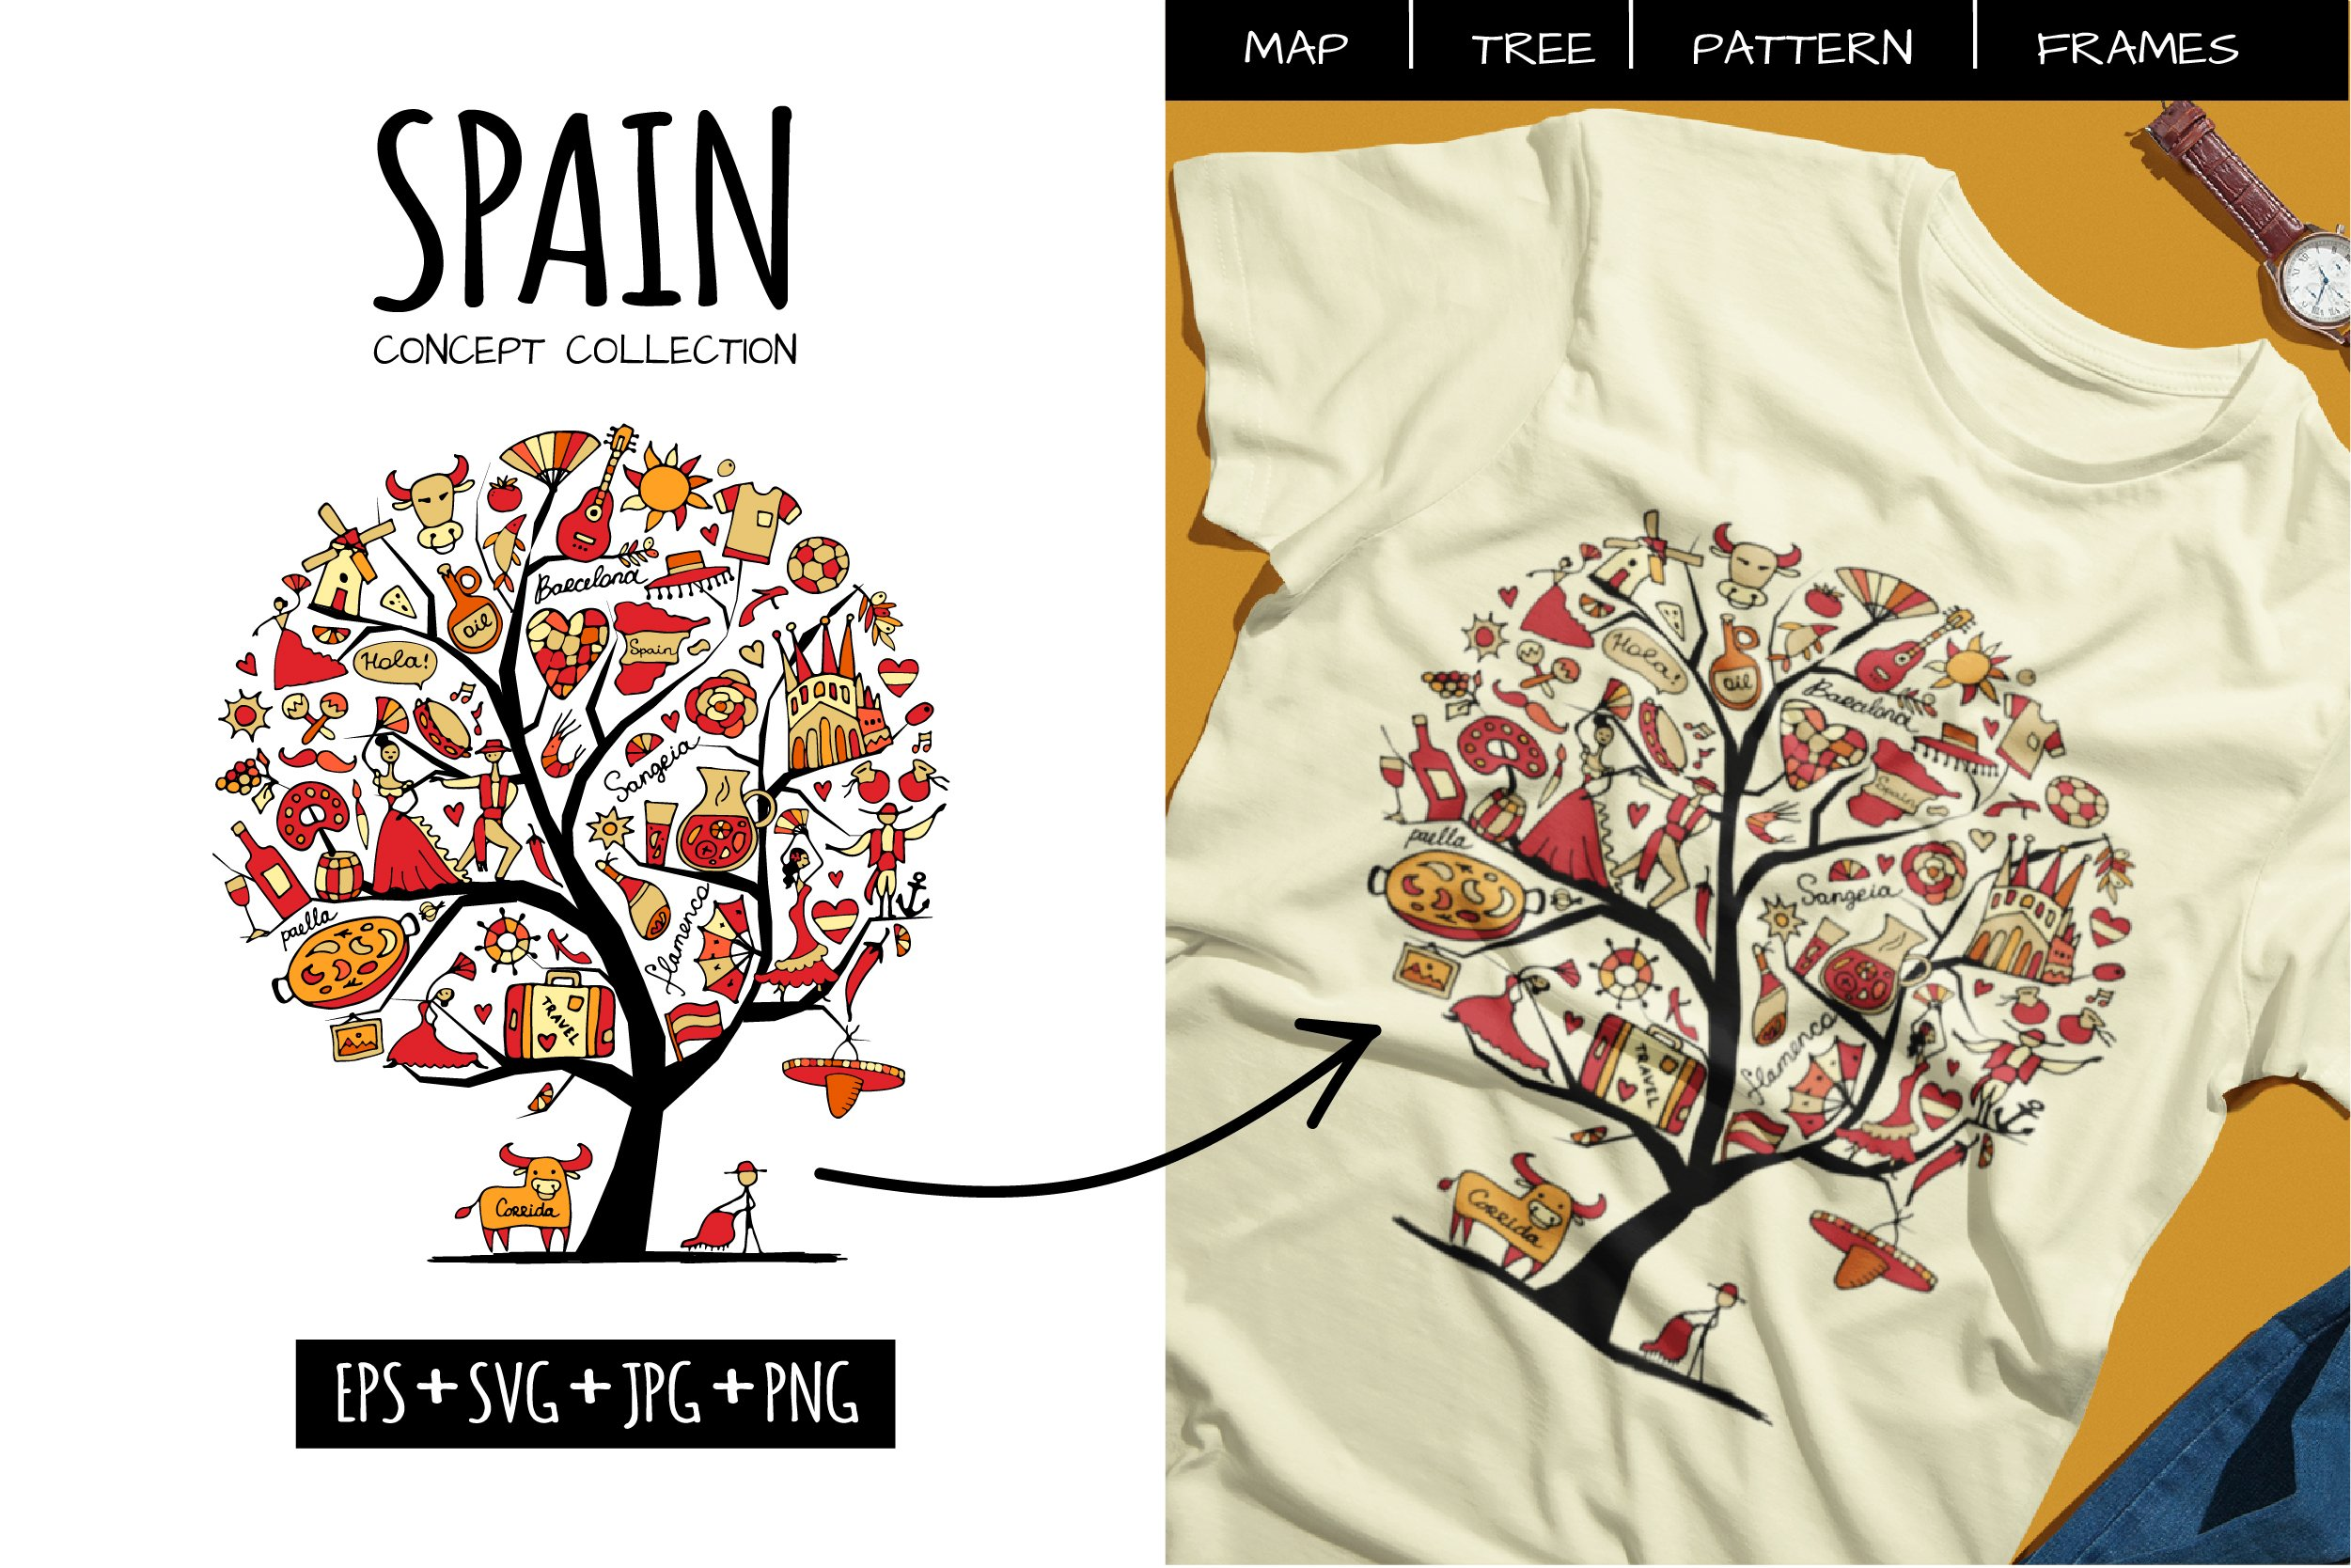 Spain set in one style - tree, pattern, heart, frame example image 1